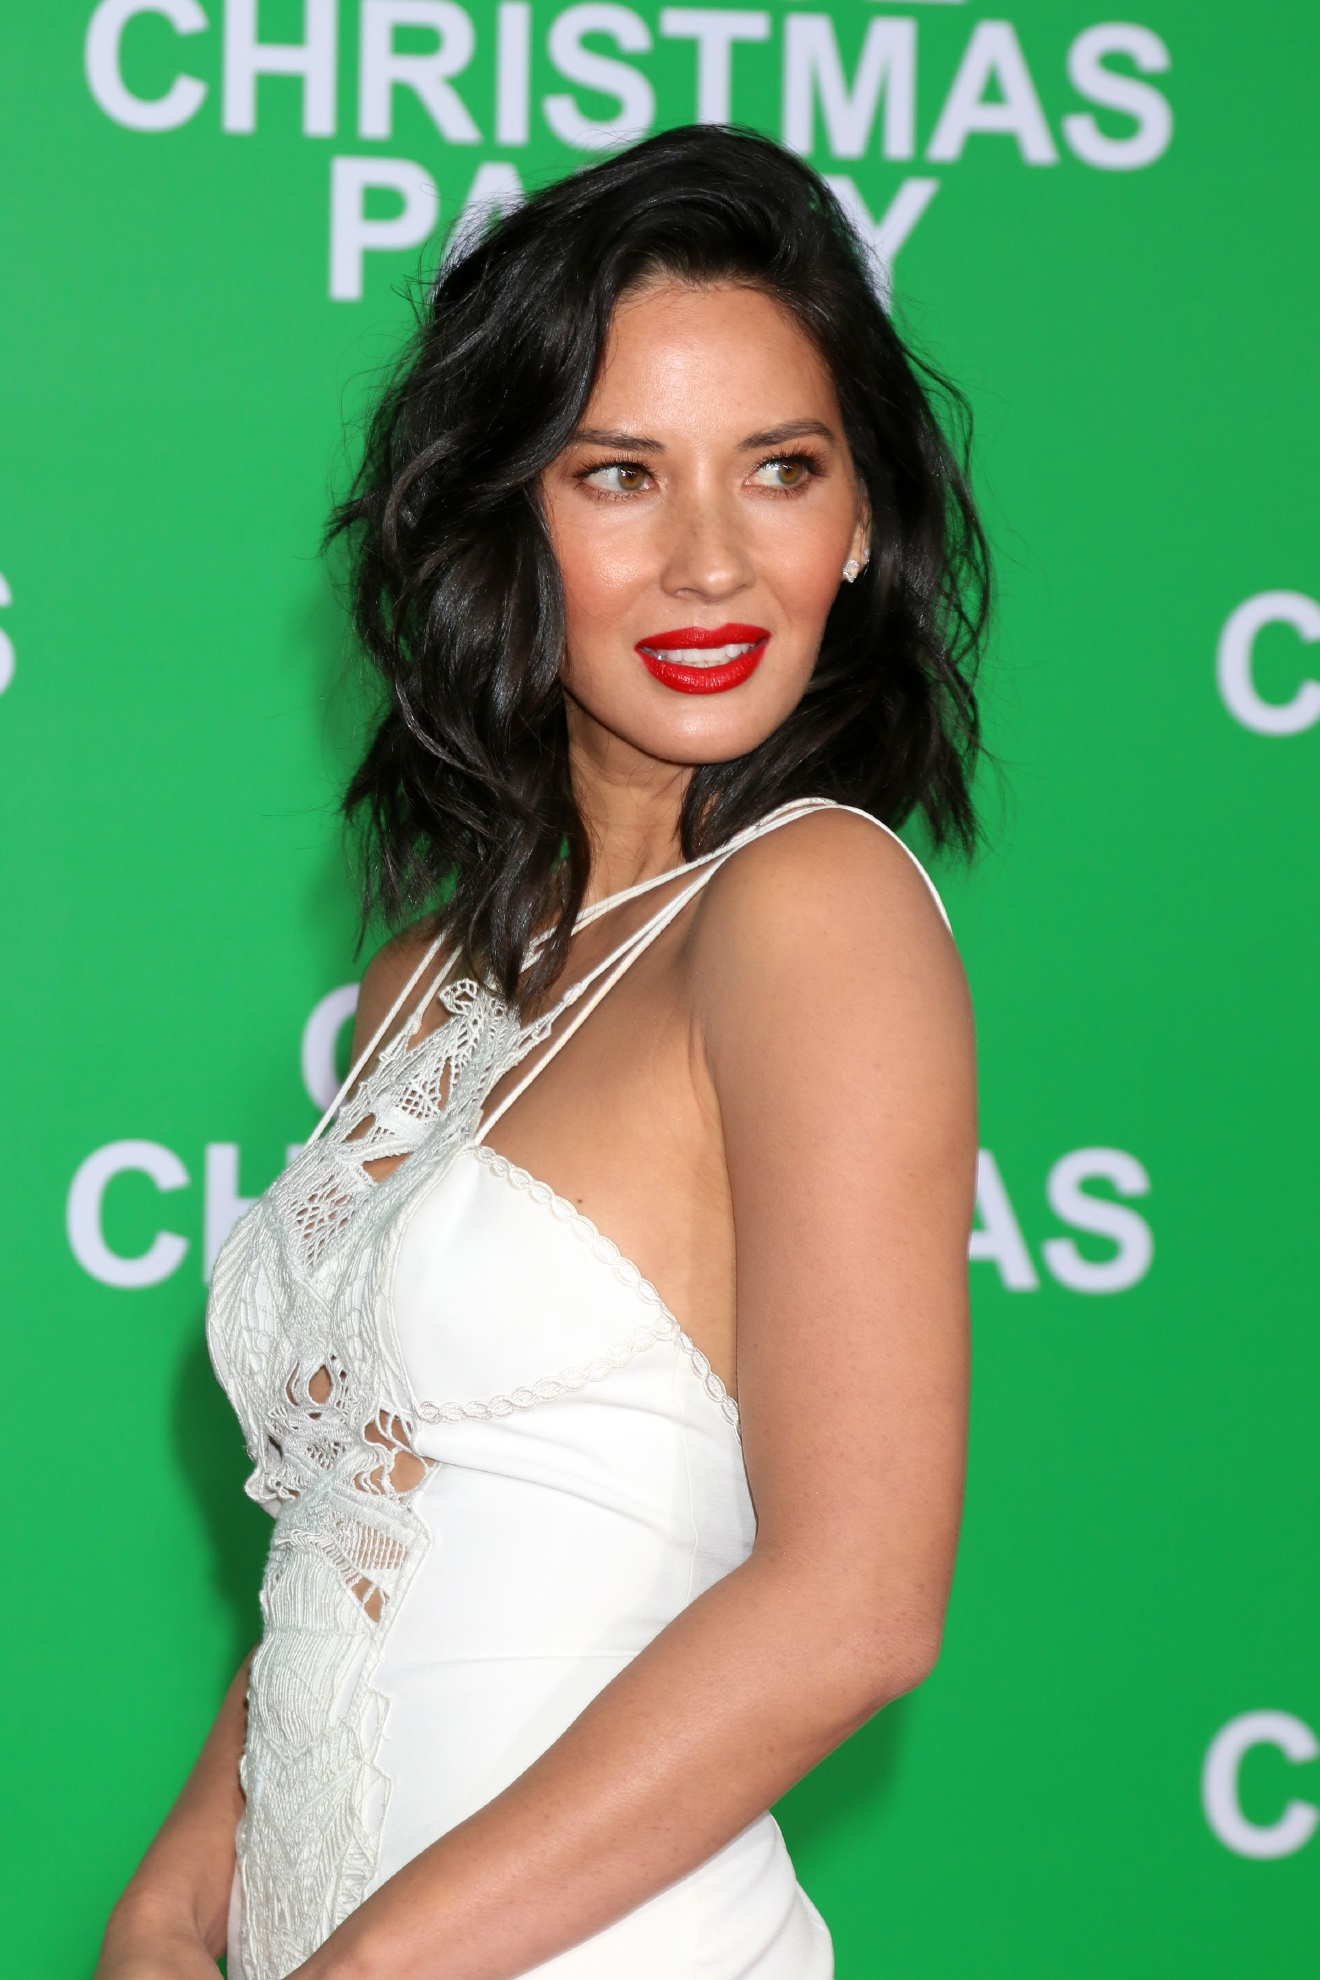 'Office Christmas Party' Premiere - Arrivals  Featuring: Olivia Munn Where: Westwood, California, United States When: 08 Dec 2016 Credit: Nicky Nelson/WENN.com